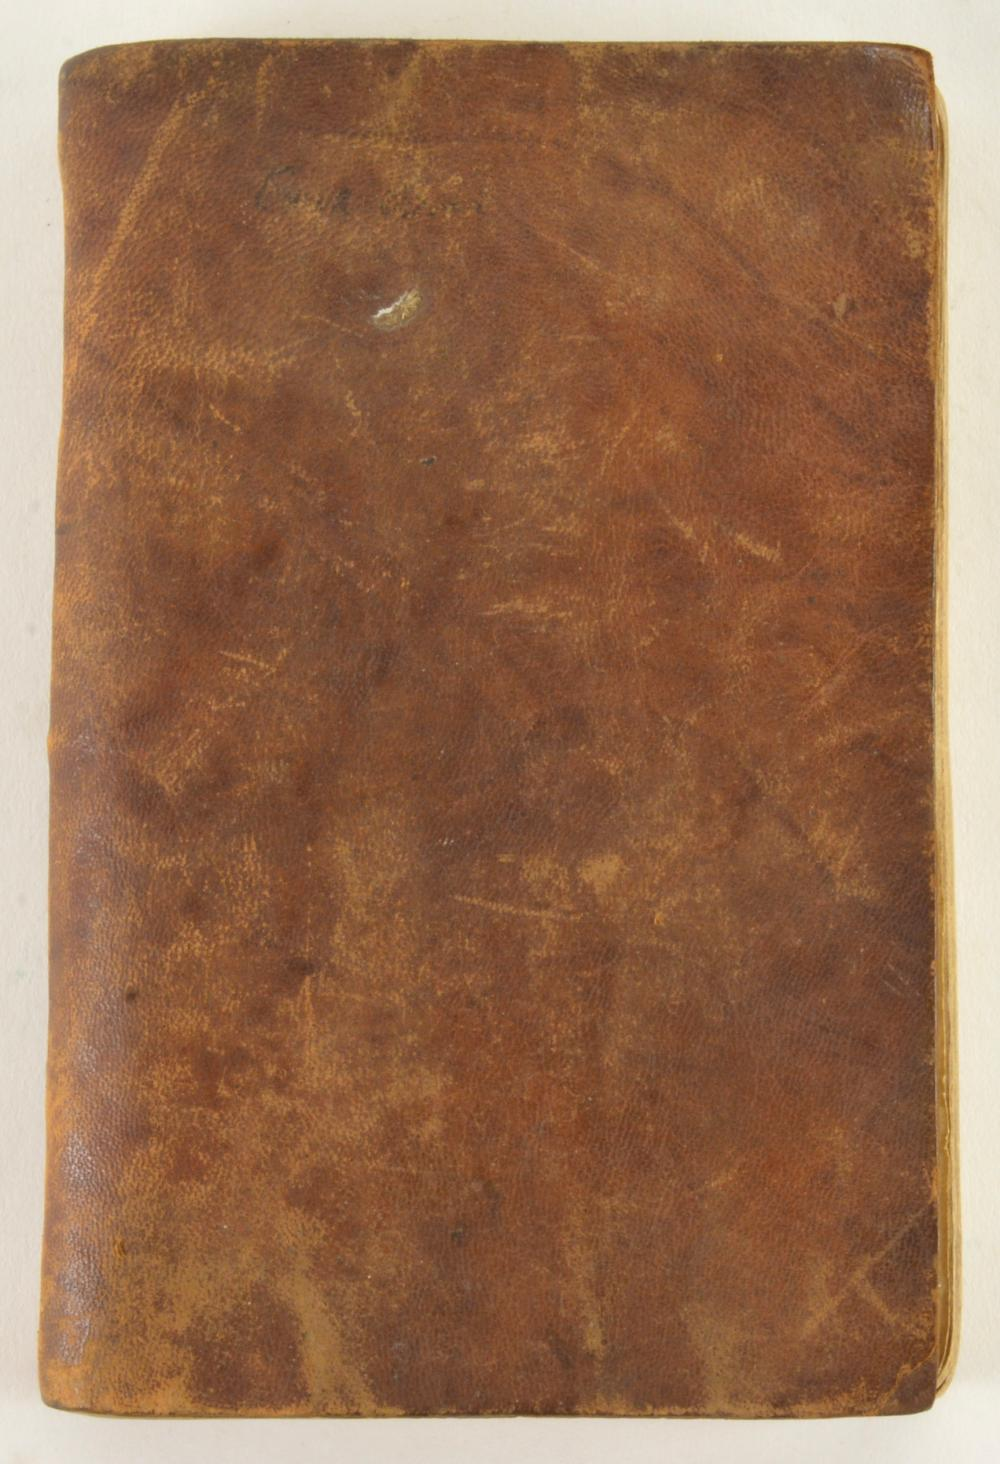 James Dillard Va. 1819-21 Cash Account Book